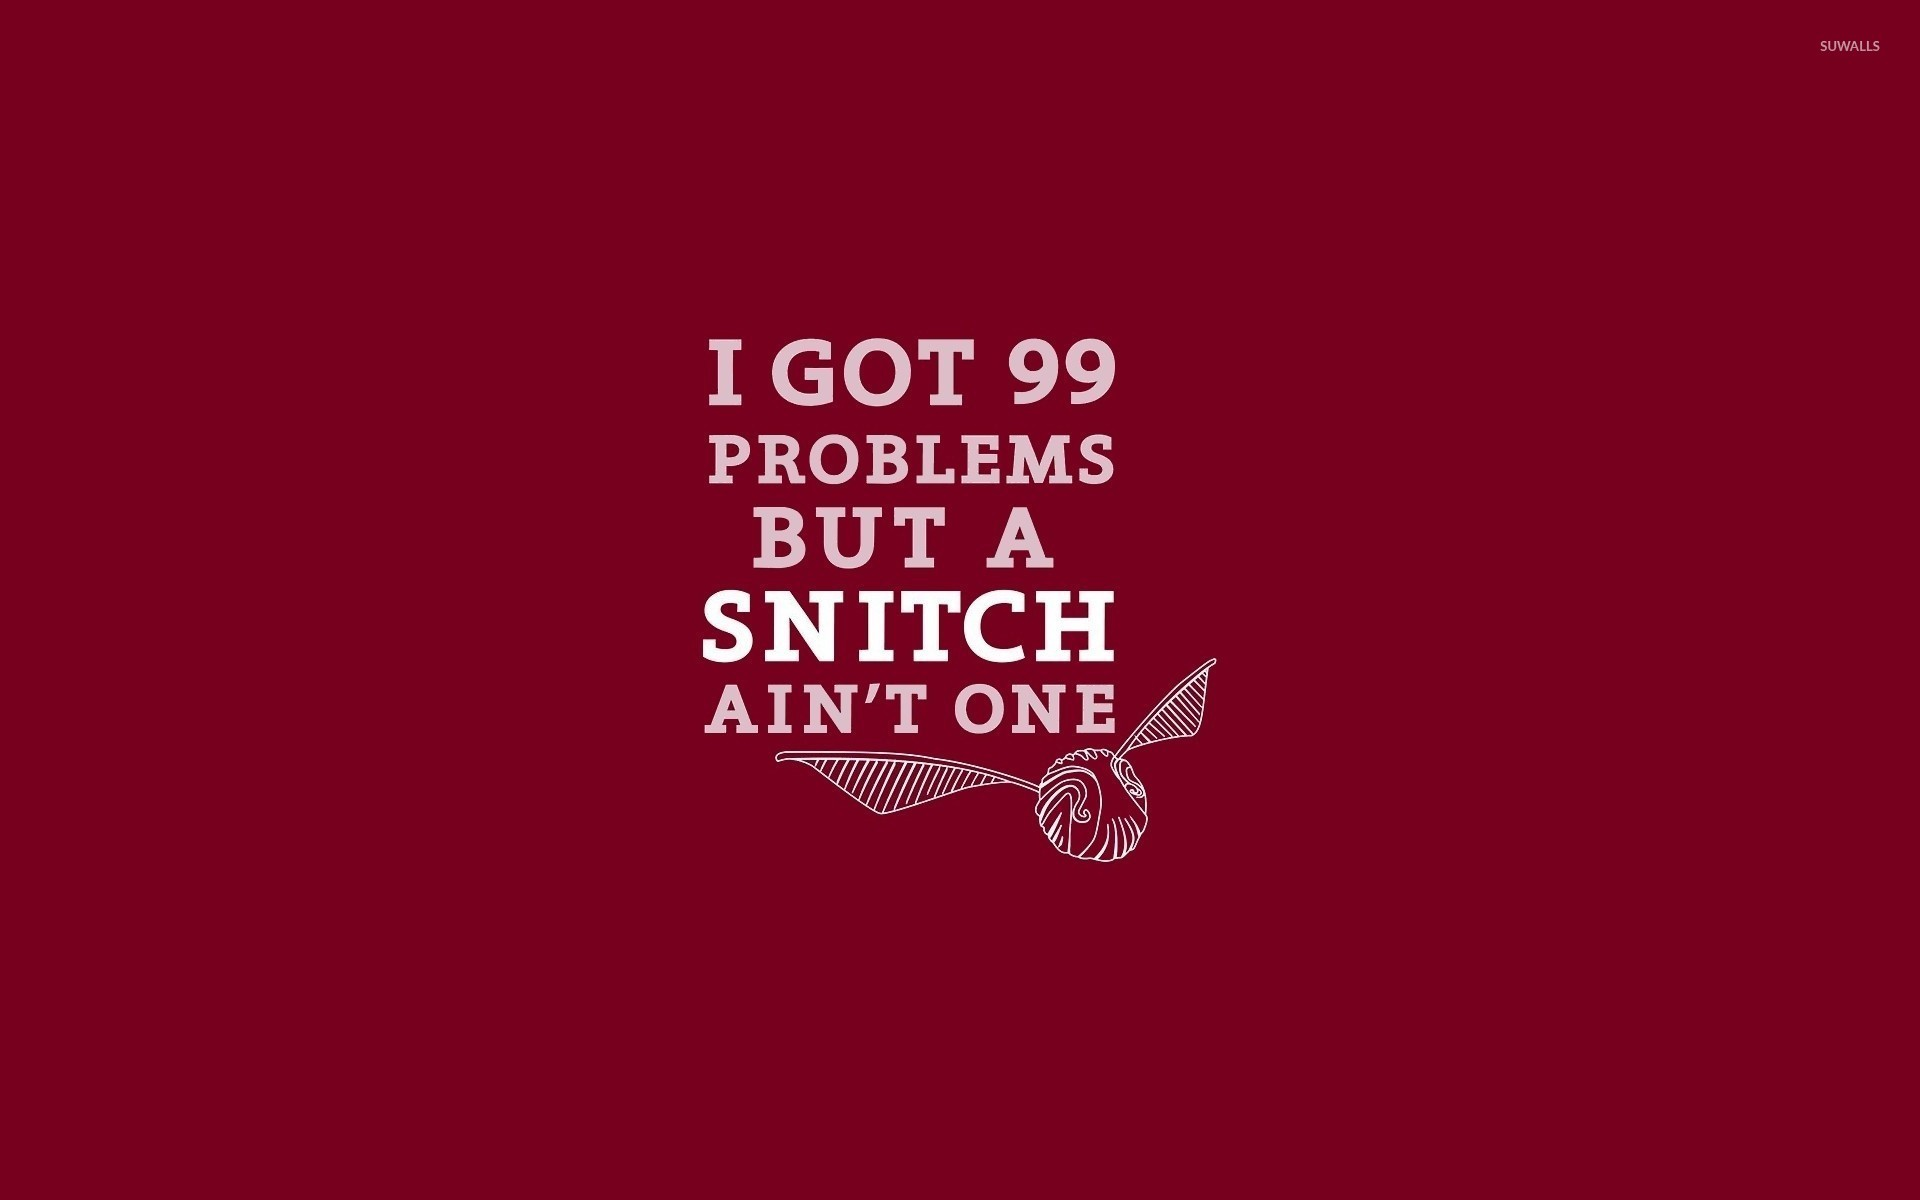 99 problems but a snitch ain't one wallpaper jpg